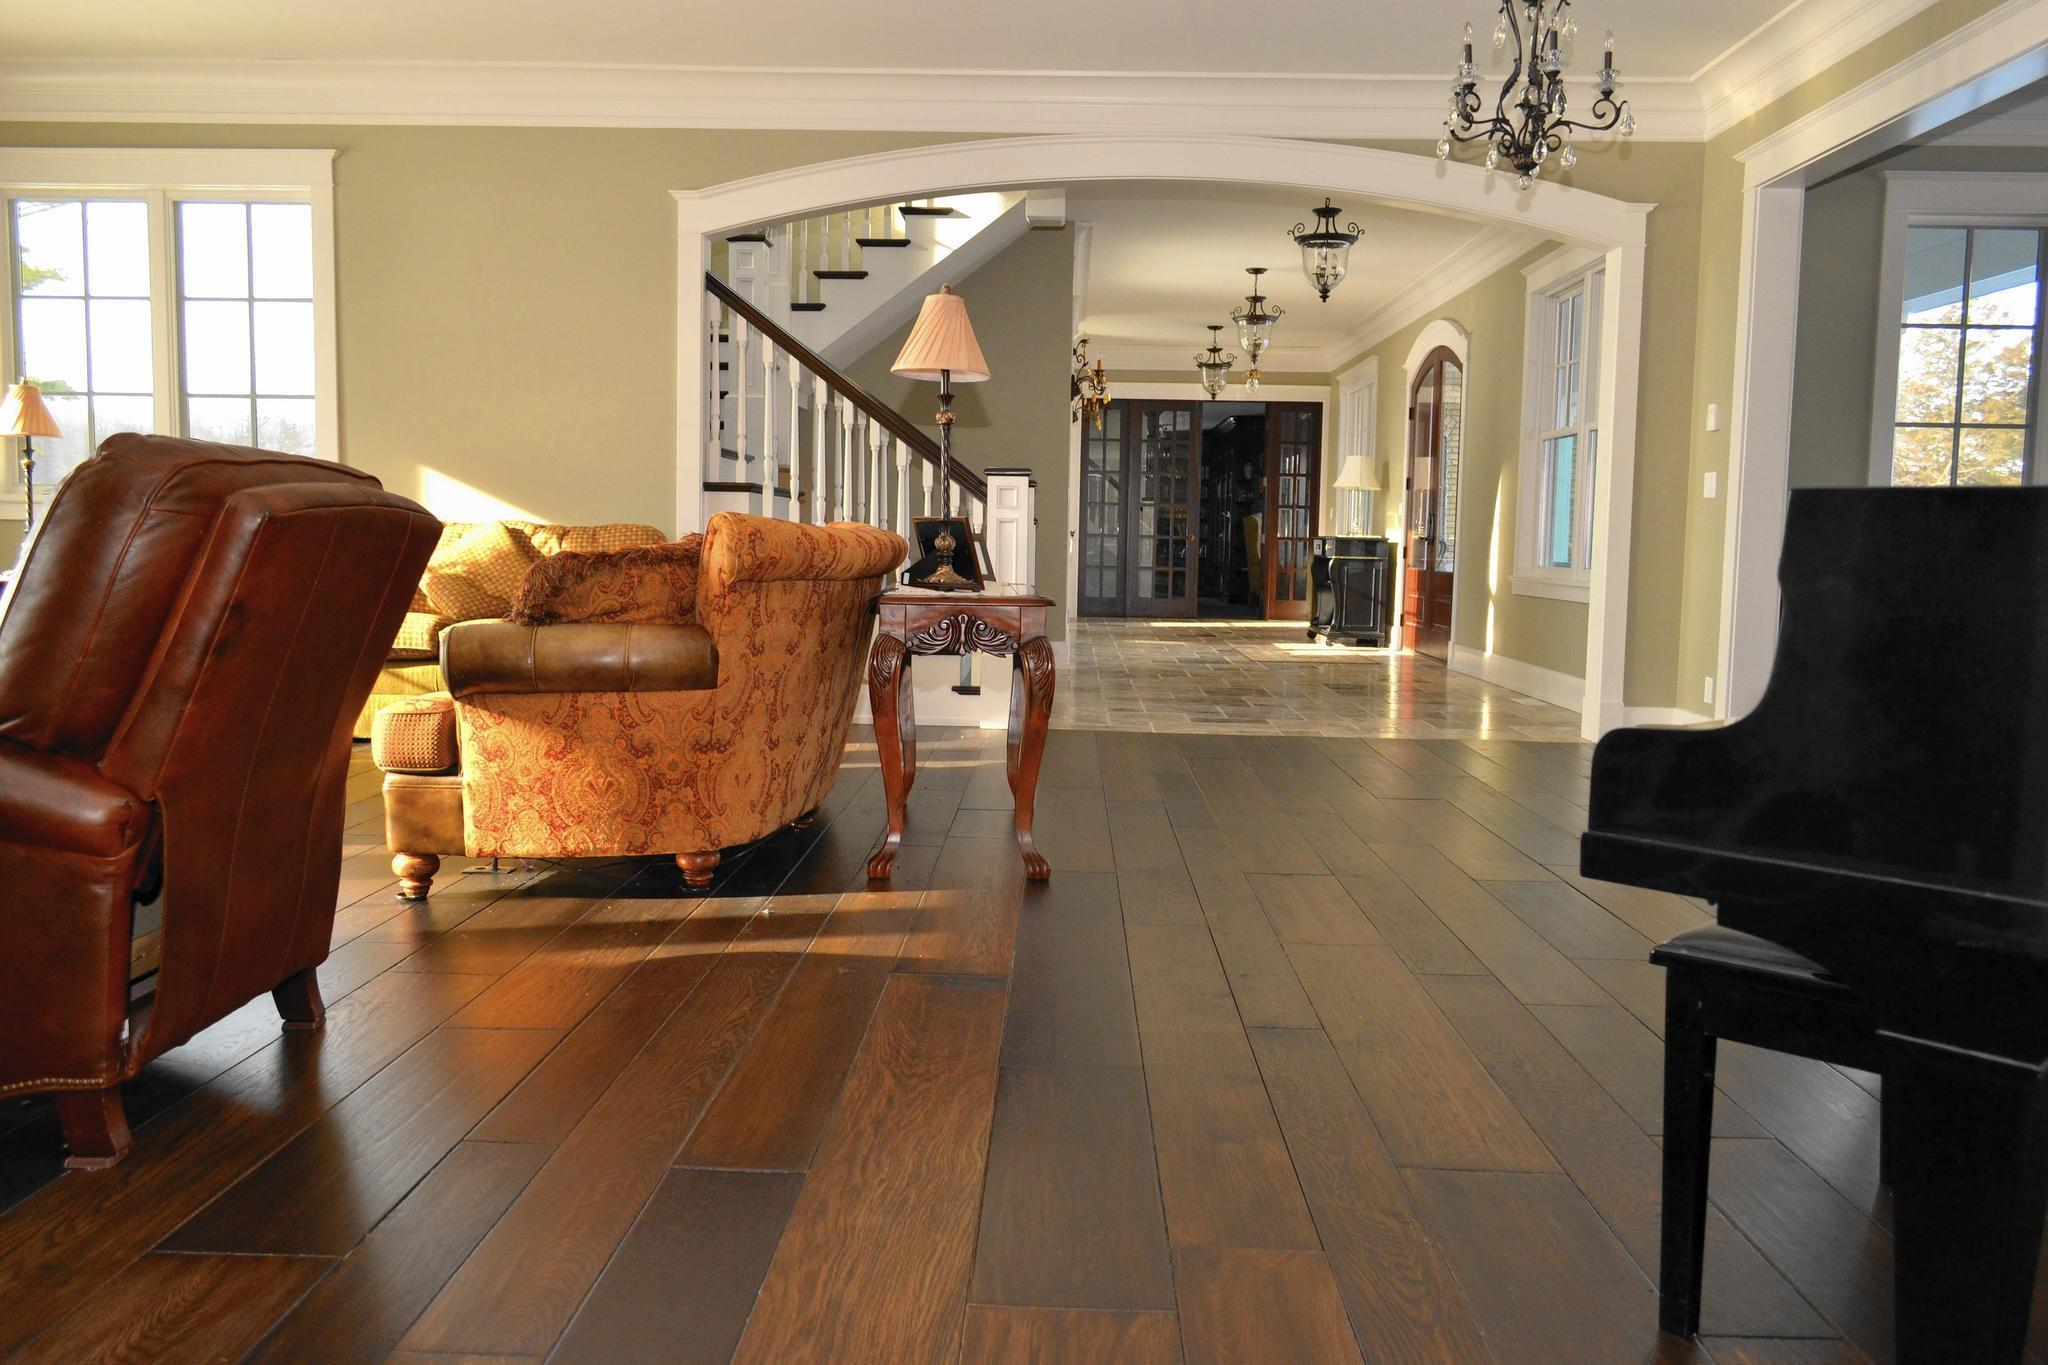 Wider Planks Darker Stains Among Wood Flooring Trends